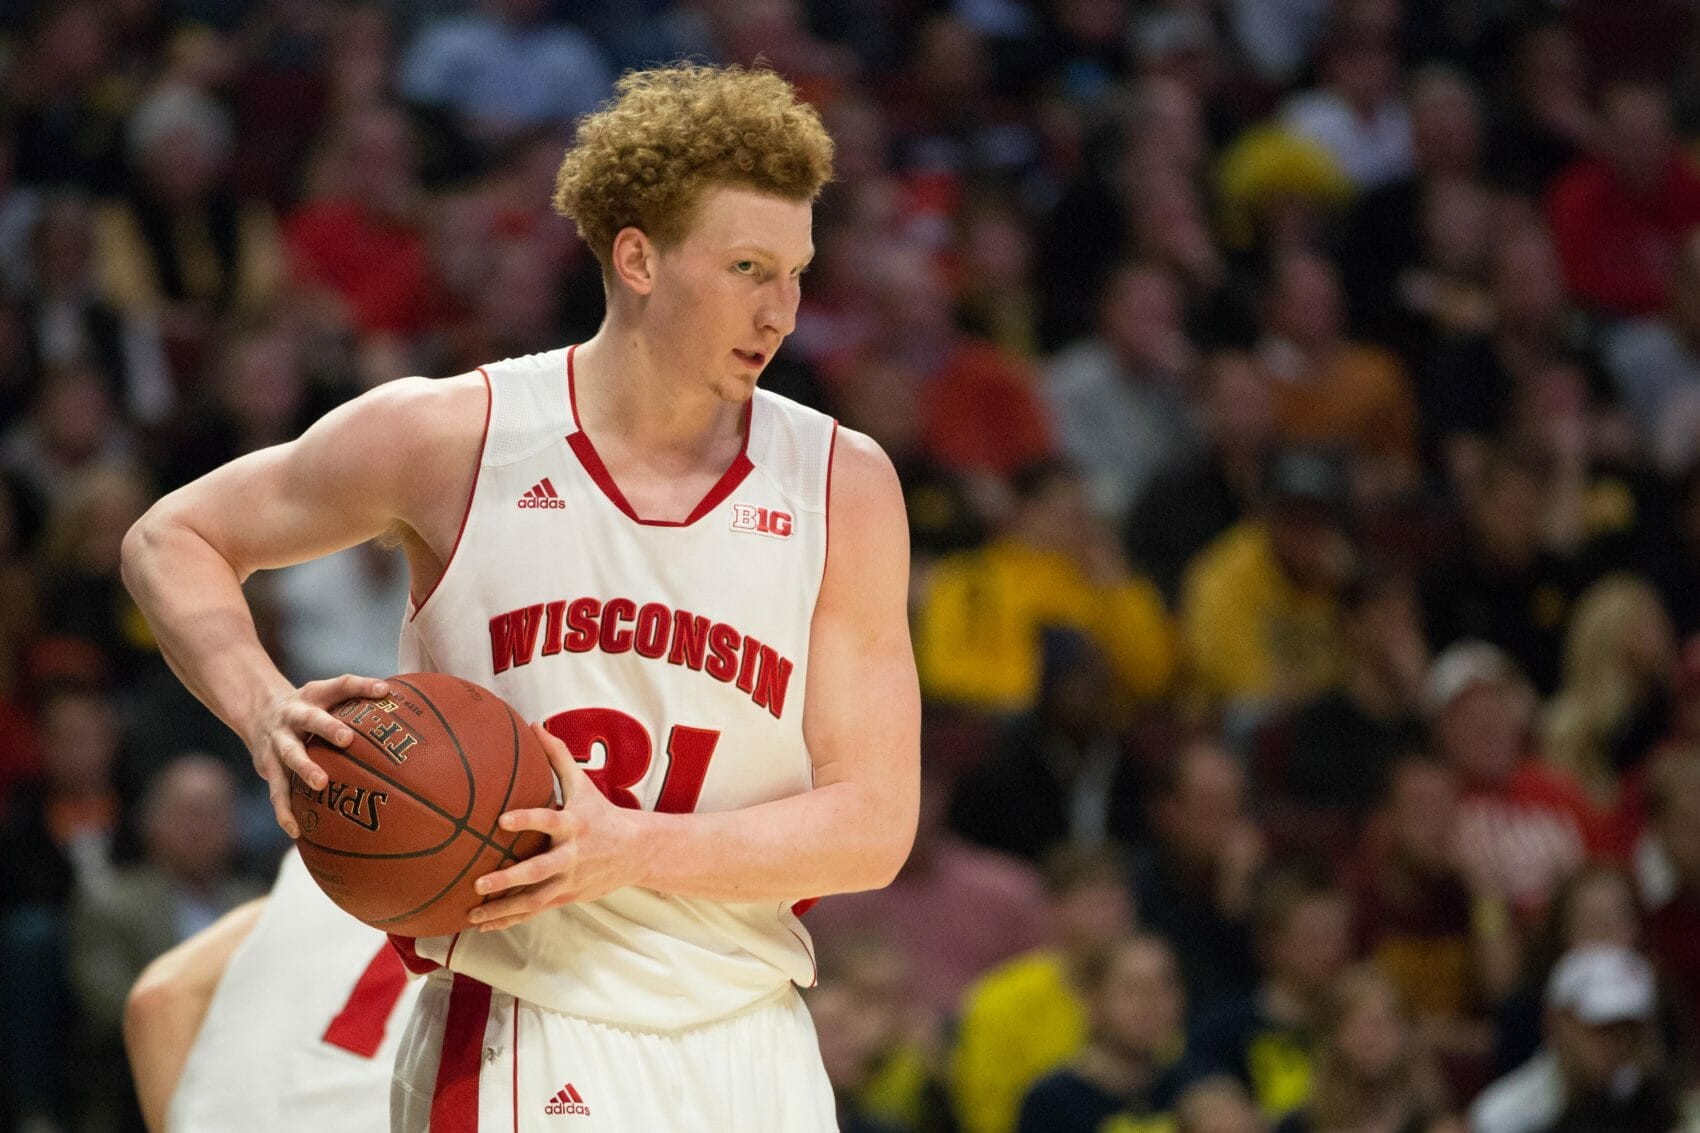 Wisconsin 68, Michigan 59-23